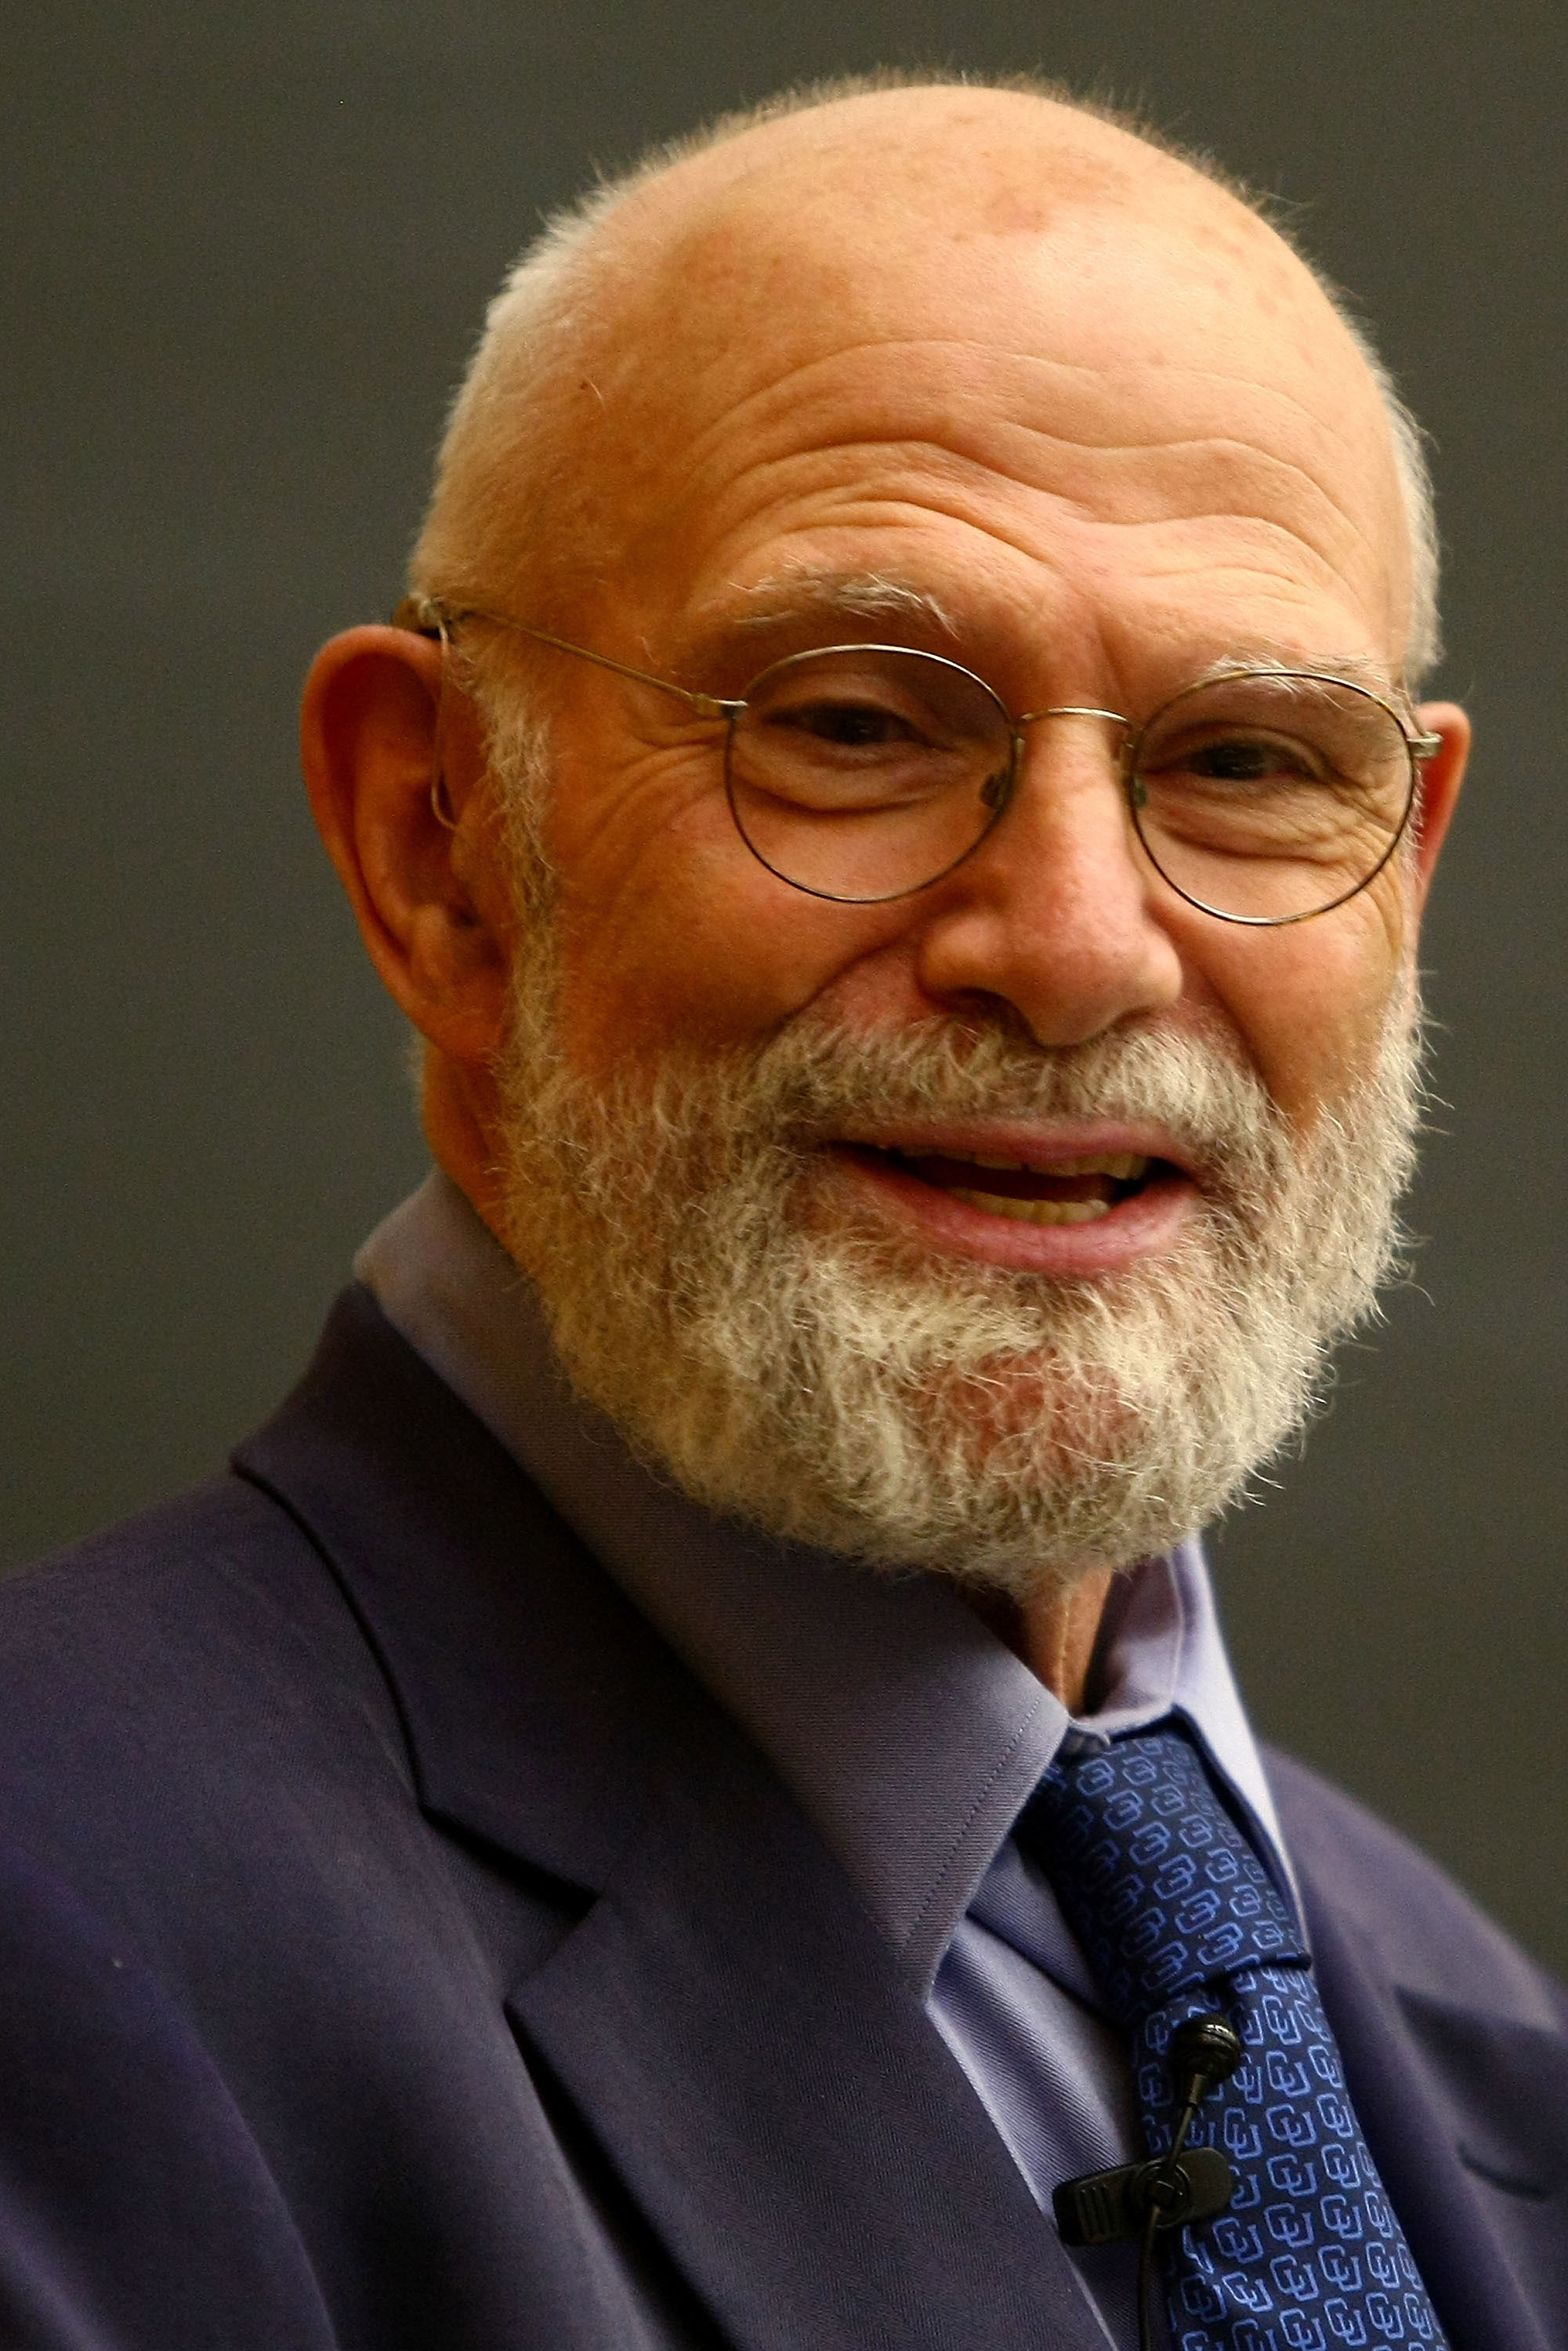 Neurologist Dr. Oliver Sacks speaks at Columbia University on June 3, 2009 in New York City.